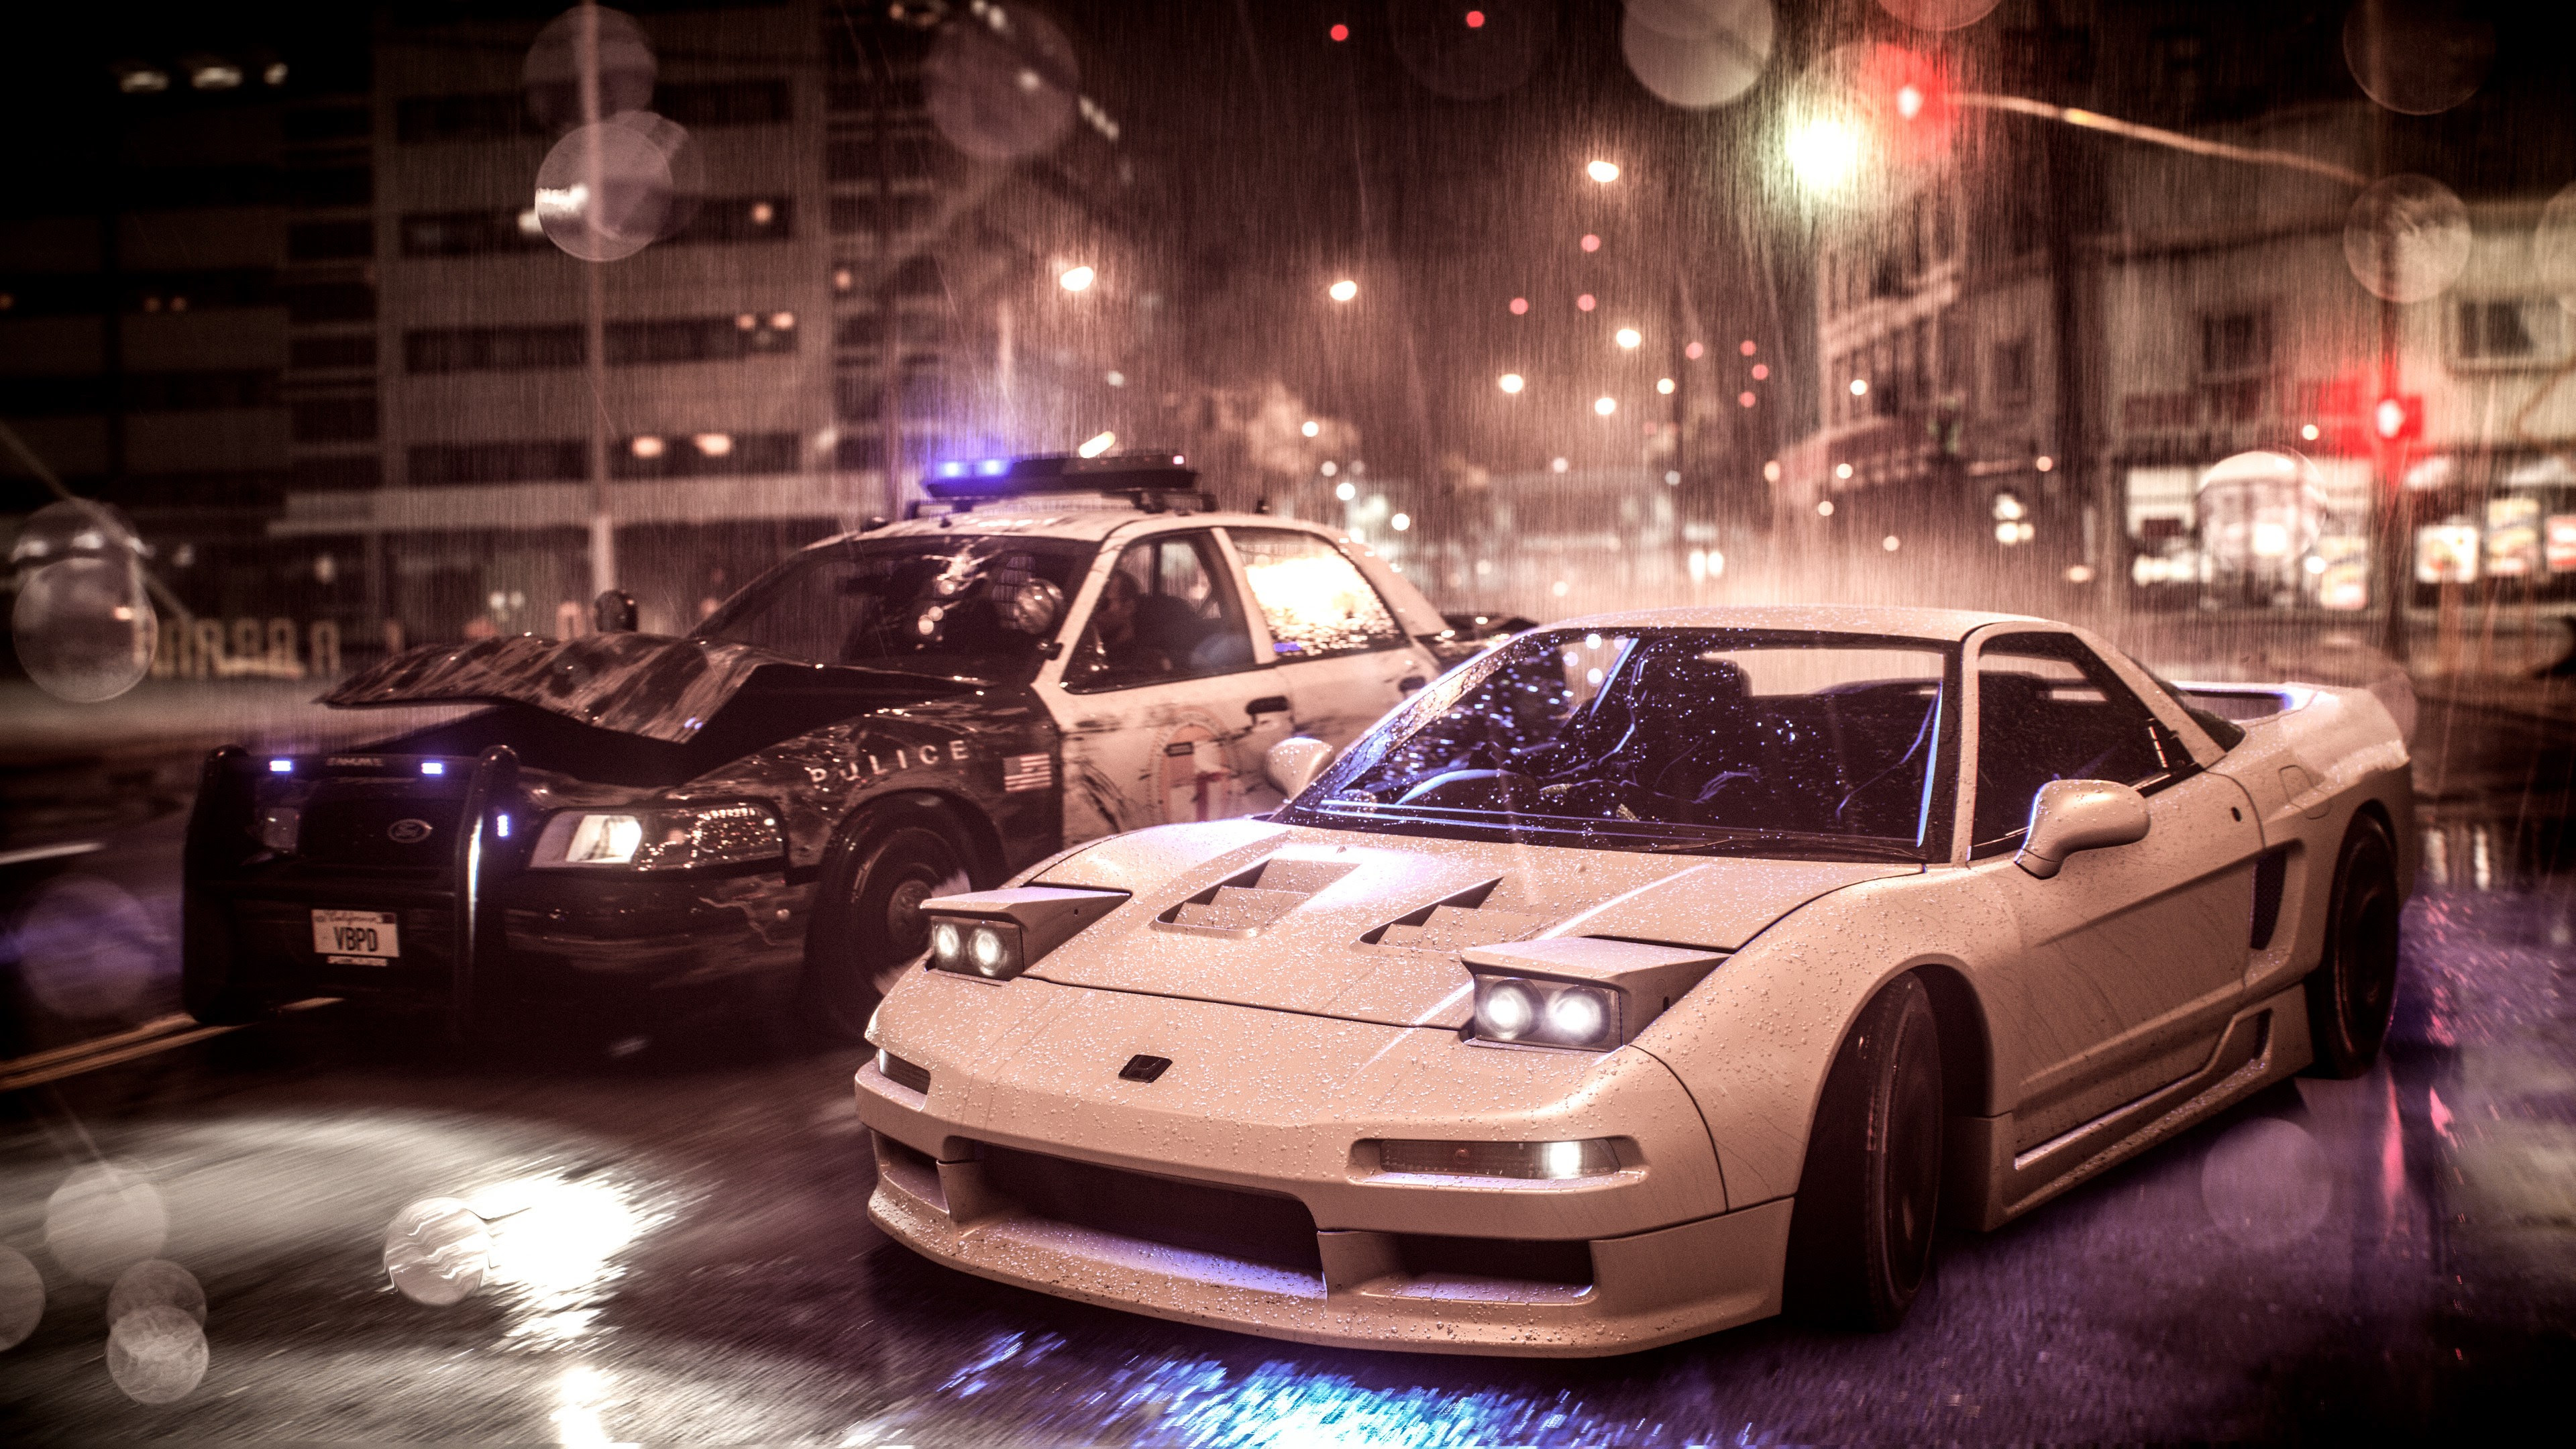 Need For Speed 2015 4k Ultra Hd Wallpaper High Quality Walls